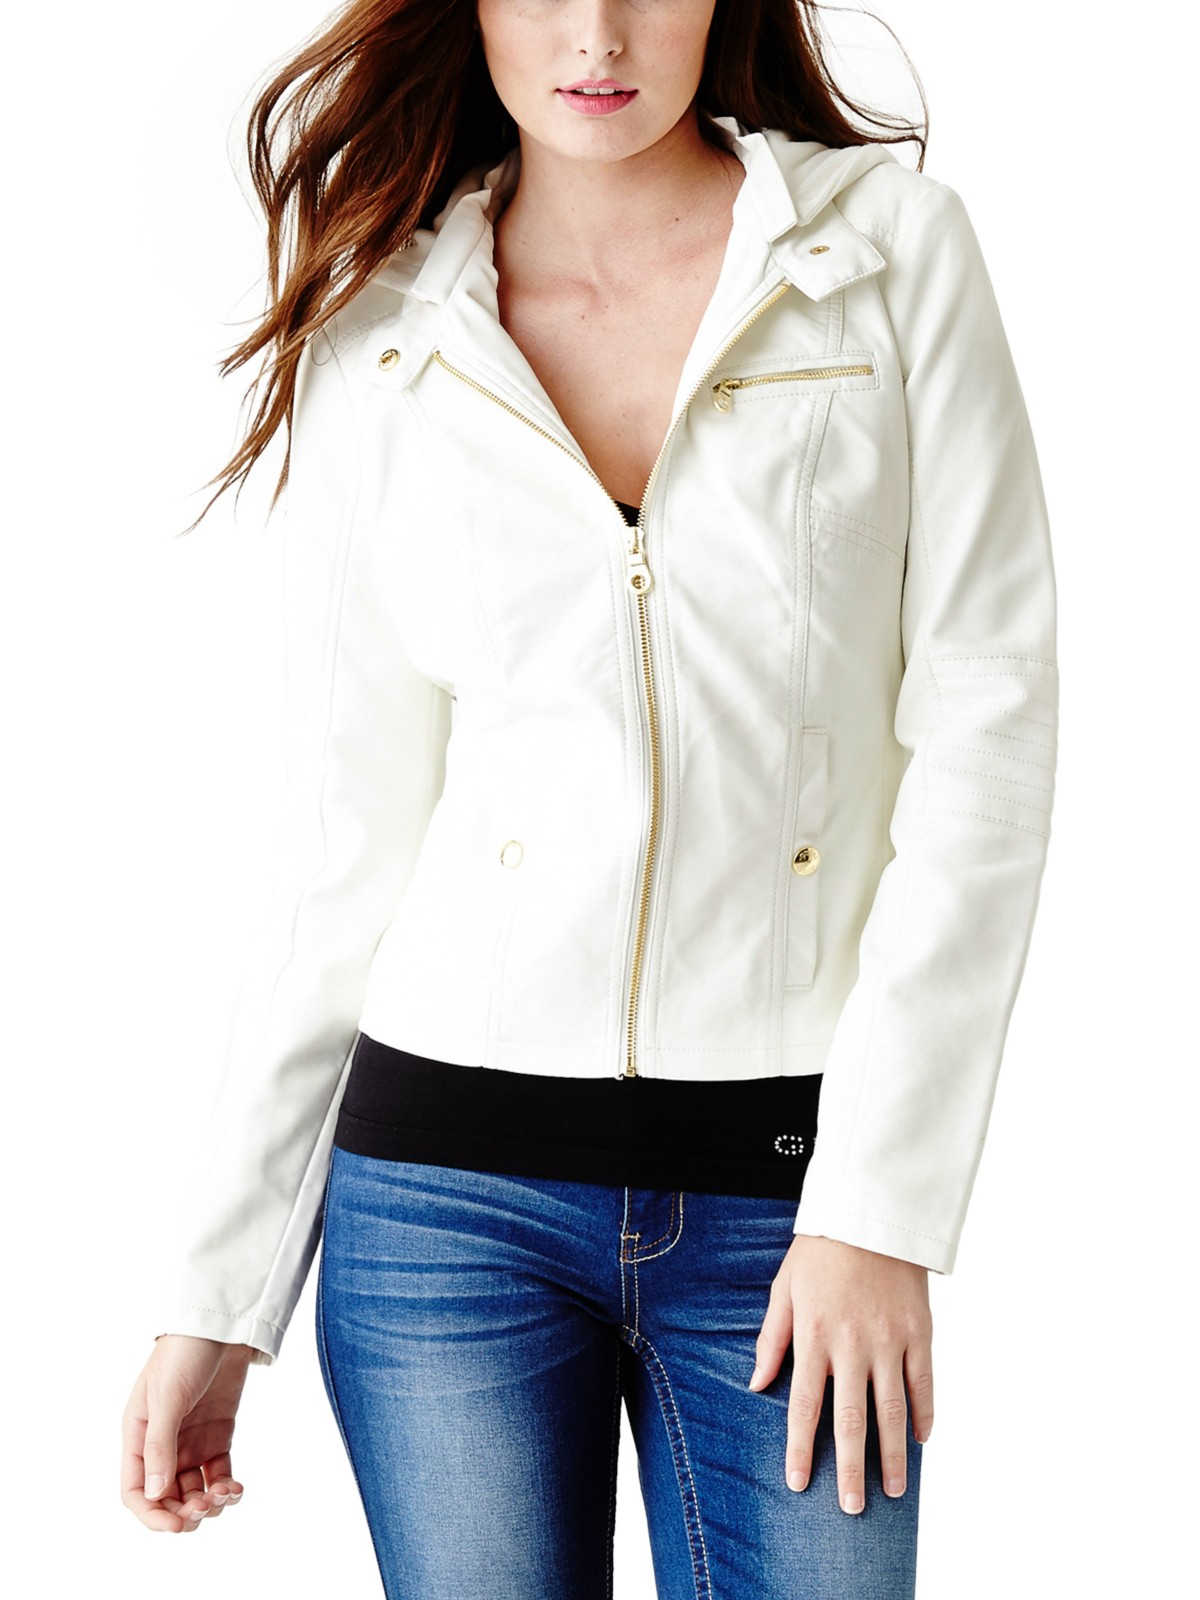 Guess jackets for women